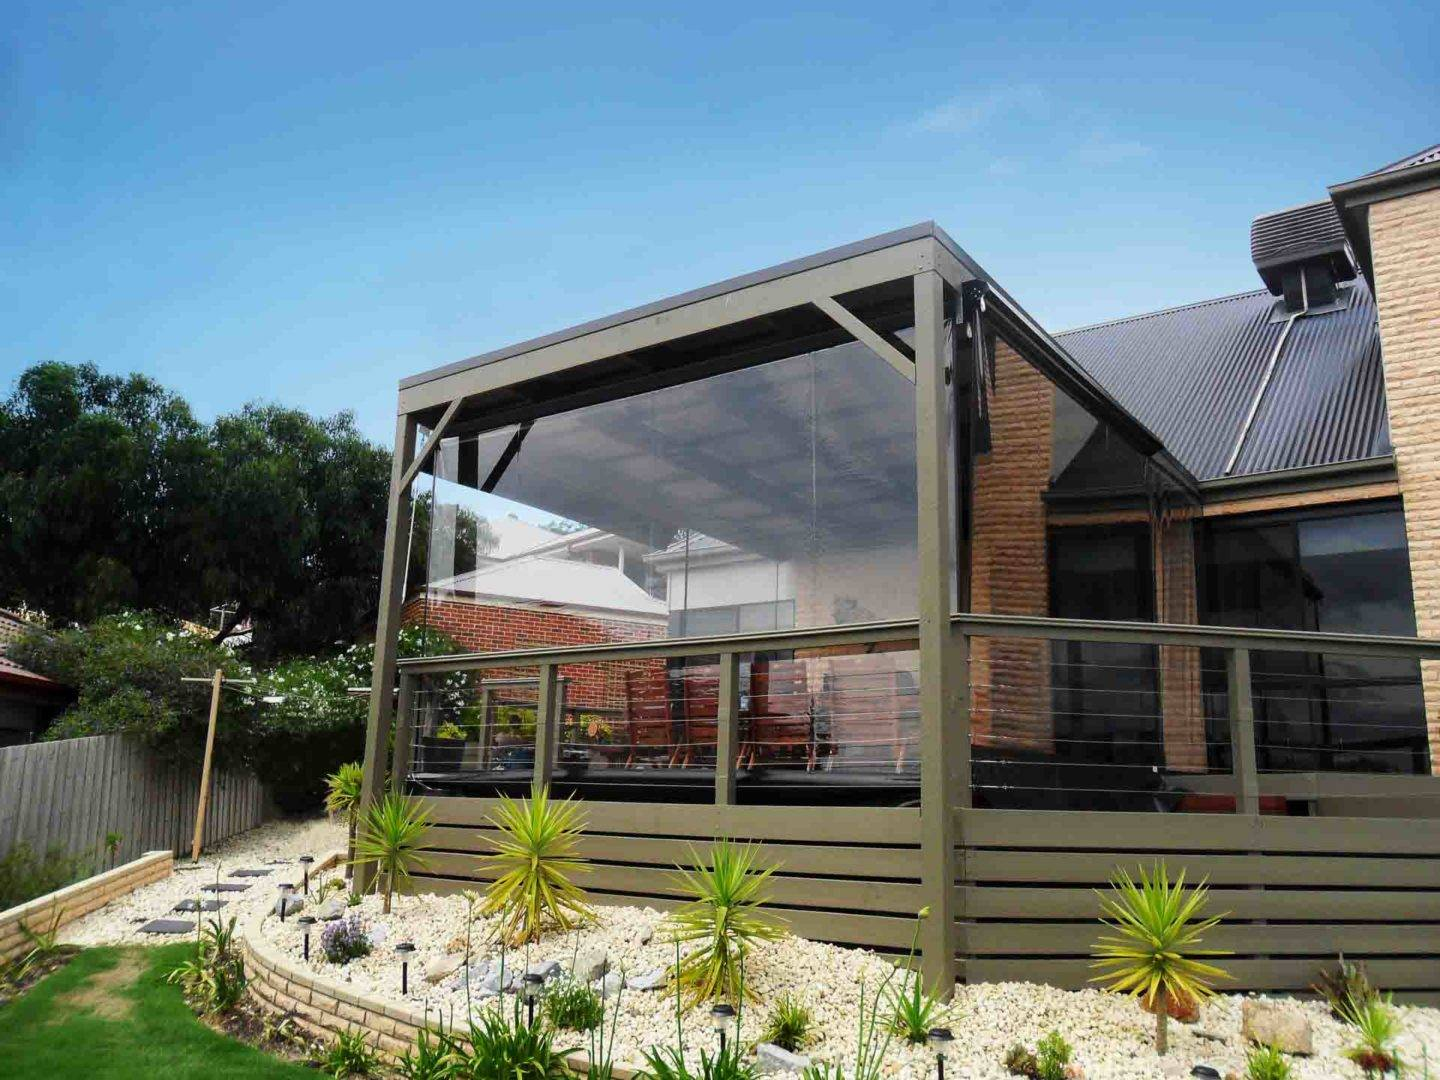 Outdoor roller blinds: cleaning and maintenance tips - Maintaining your outdoor roller blinds, Australian Outdoor Living.